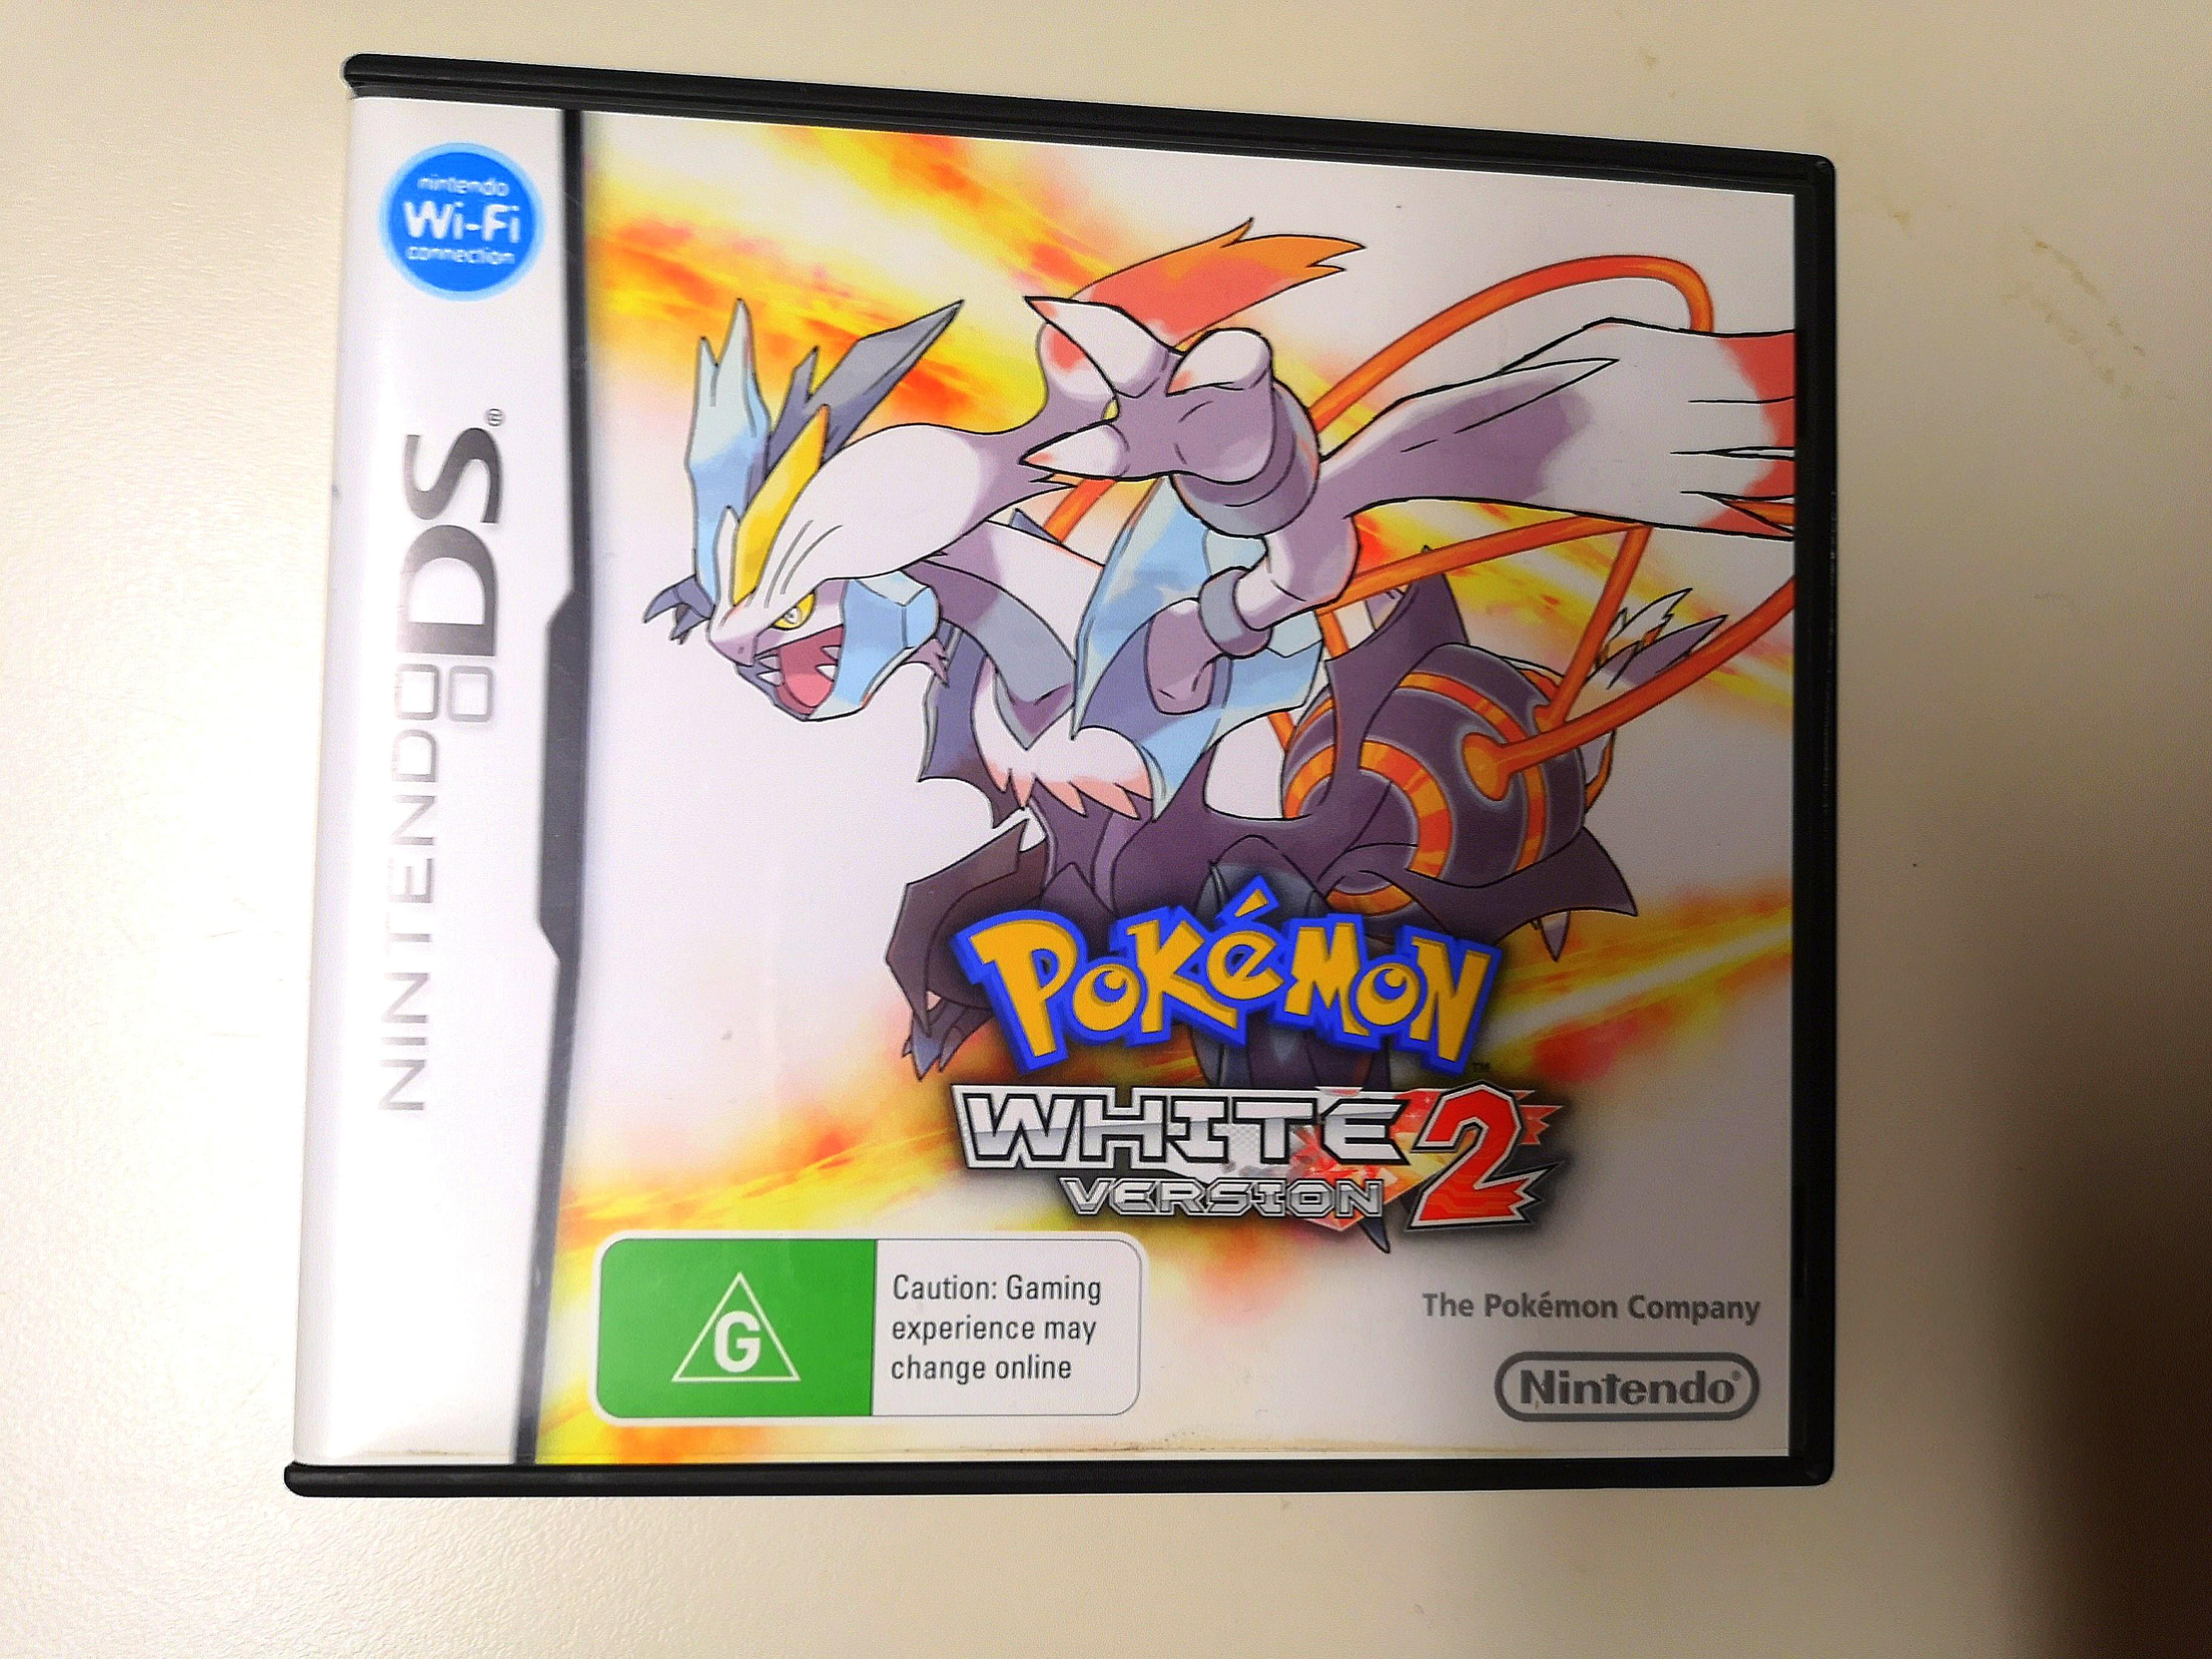 Pokemon White Version 2 - AUS PAL Boxed with Manual